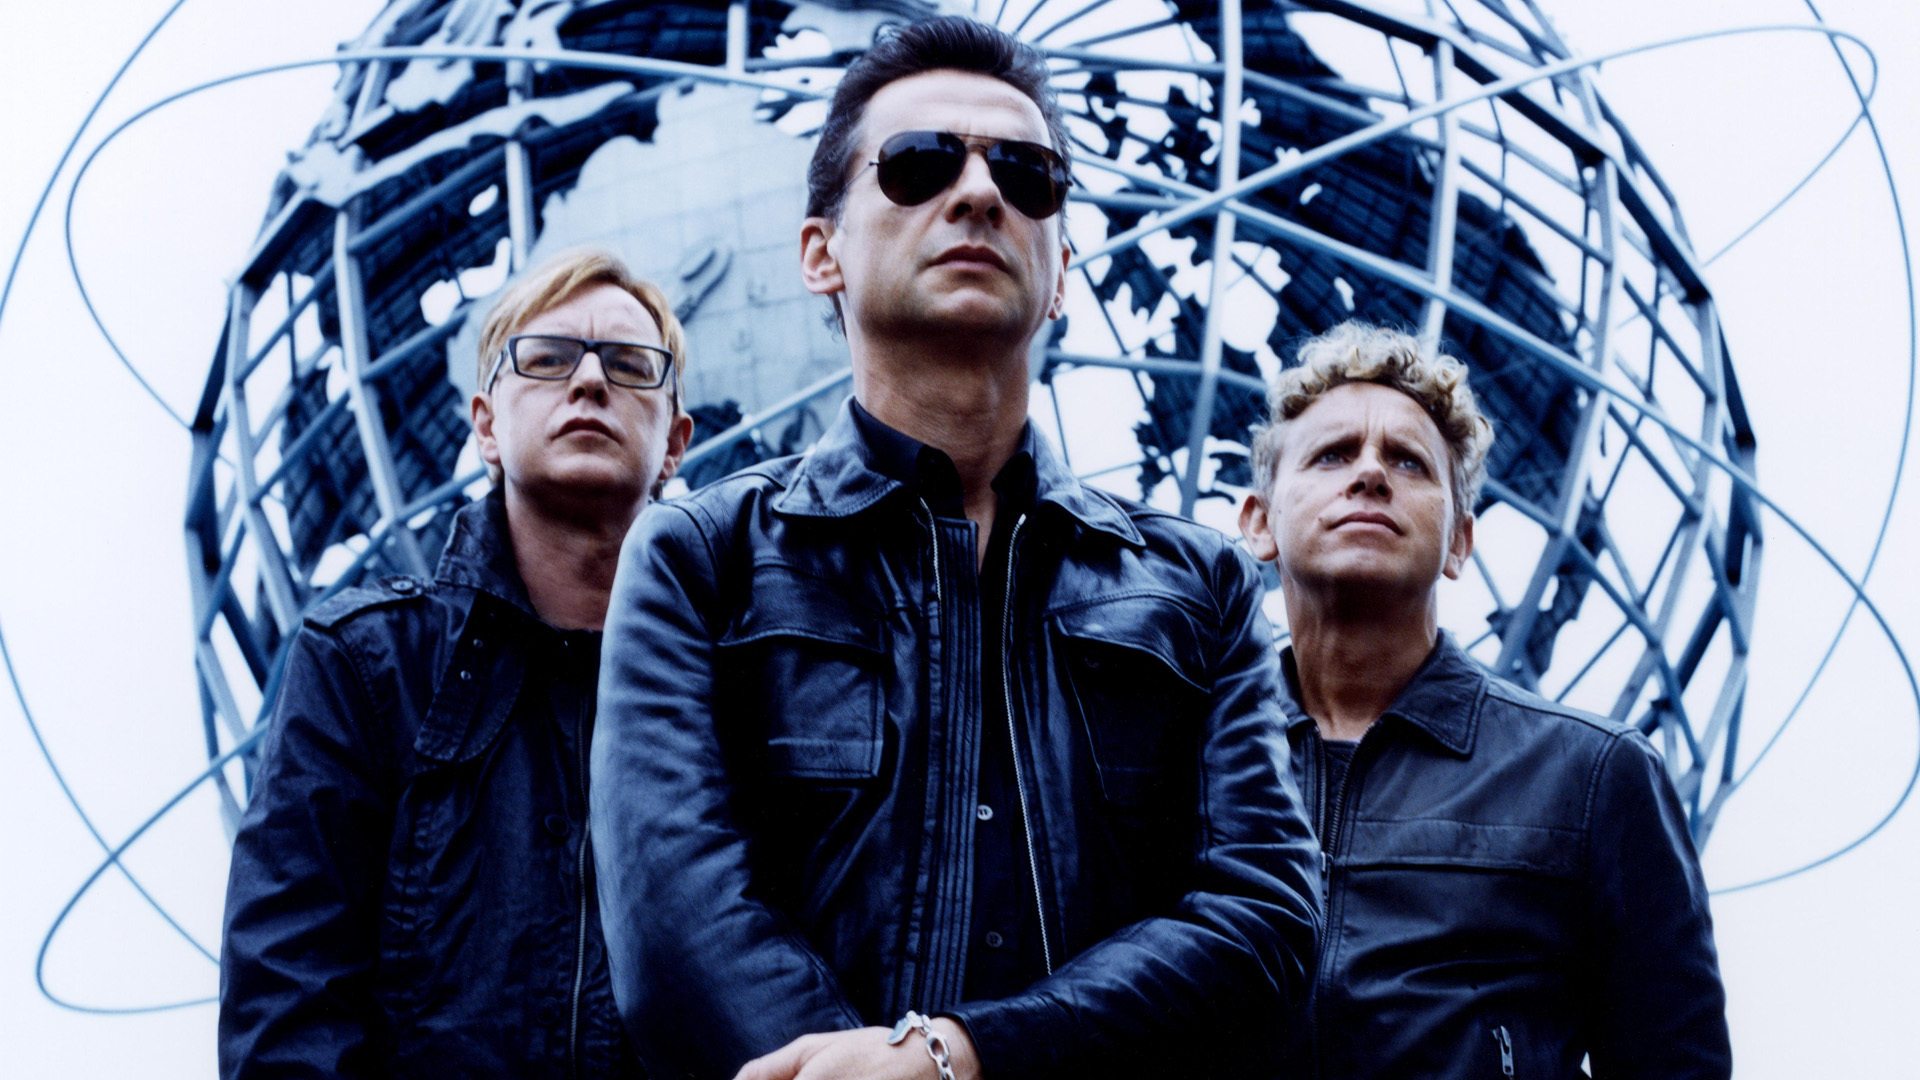 Just Can't Get Enough av Depeche Mode